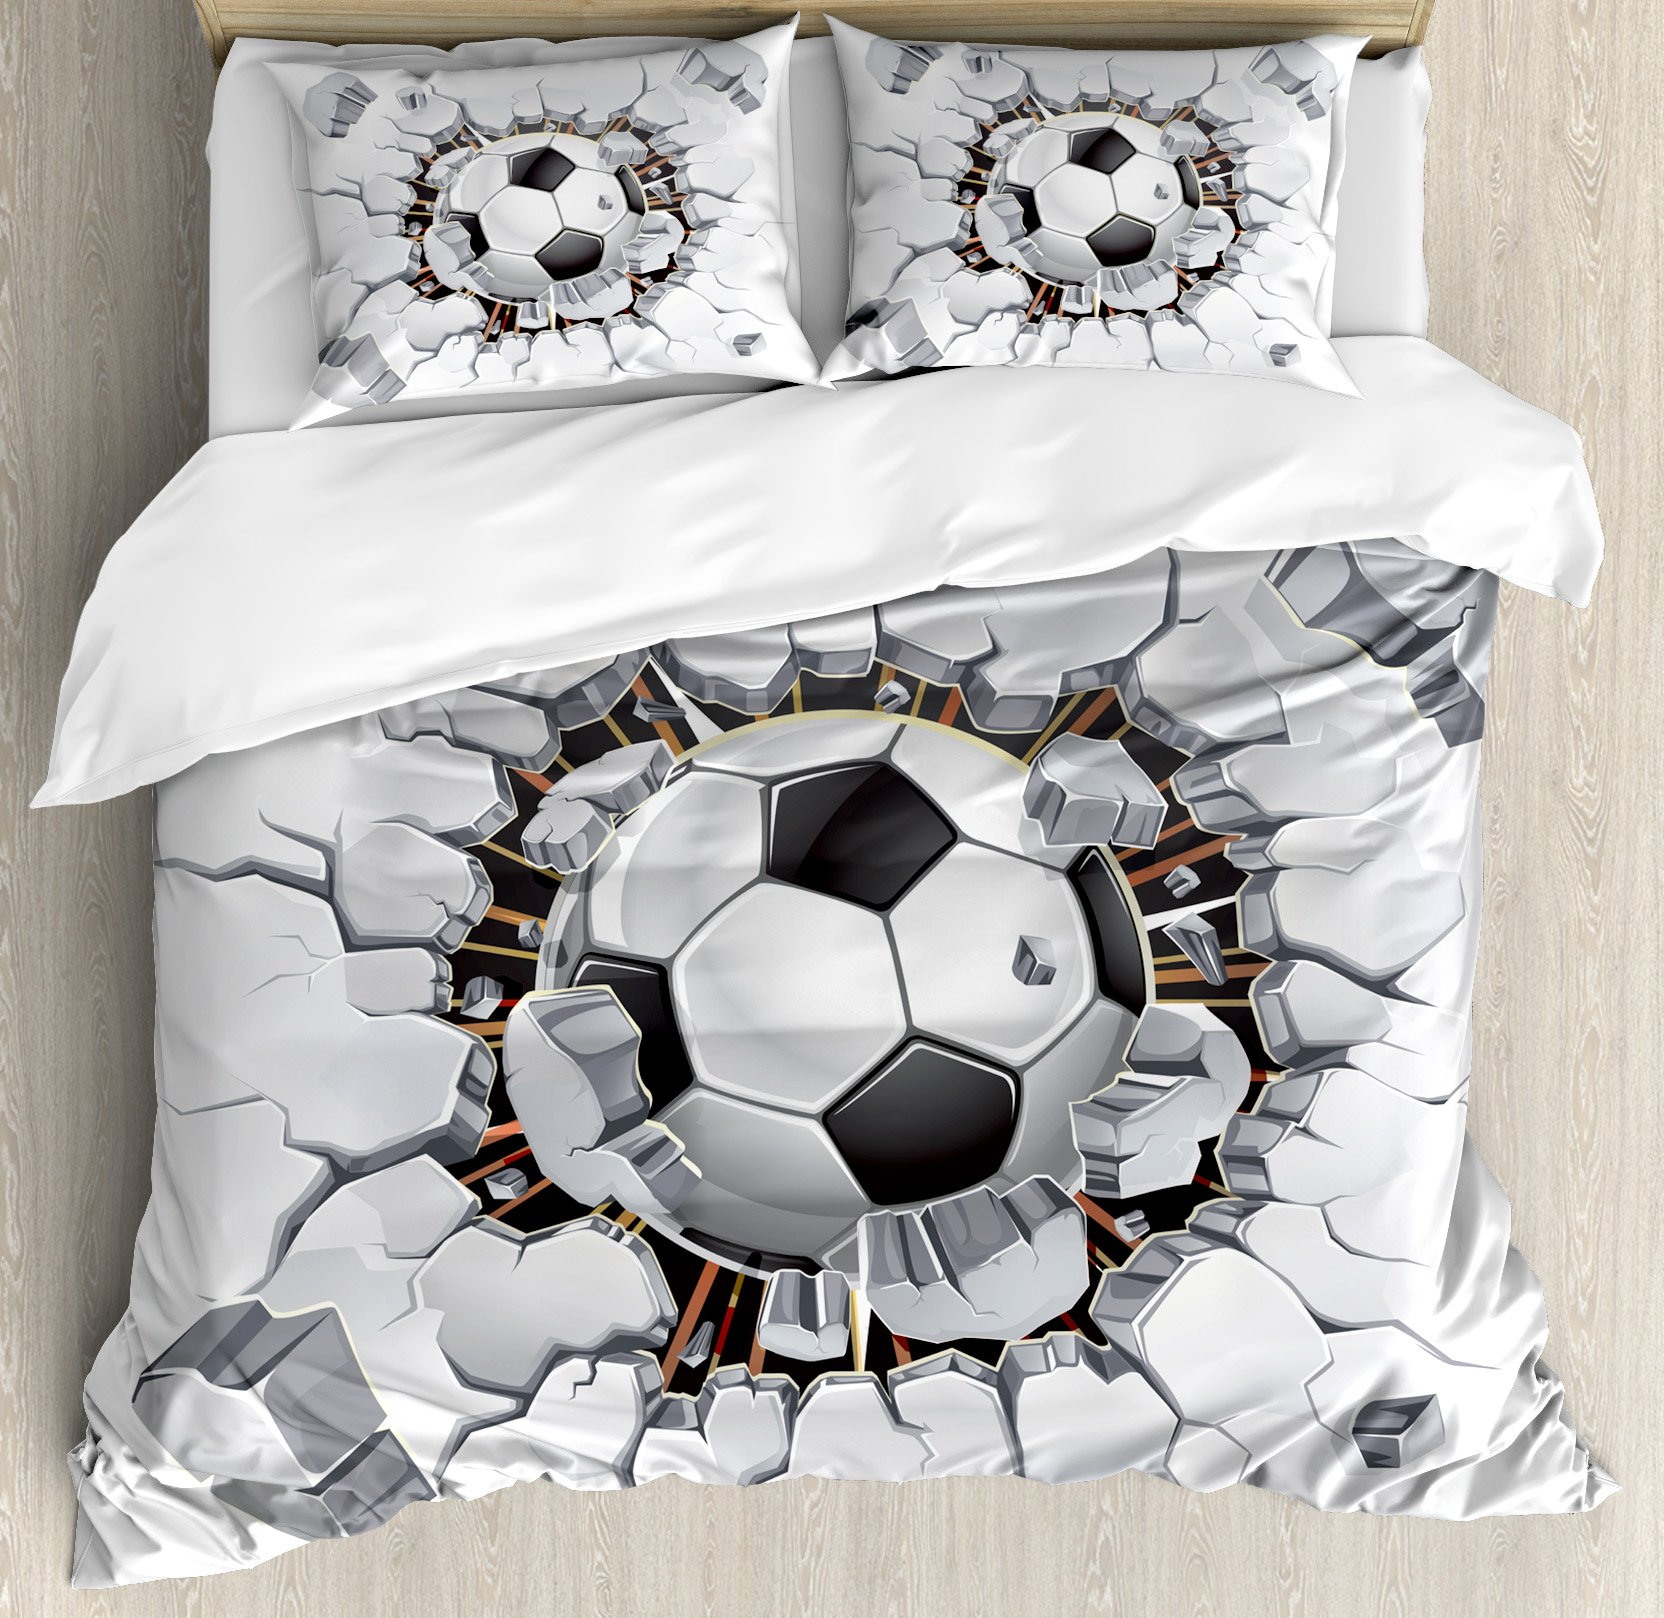 Sports Decor Queen Size Duvet Cover Set by Ambesonne, Soccer Ball and Old Plaster Wall Damage Destruction Punching Illustration, Decorative 3 Piece Bedding Set with 2 Pillow Shams